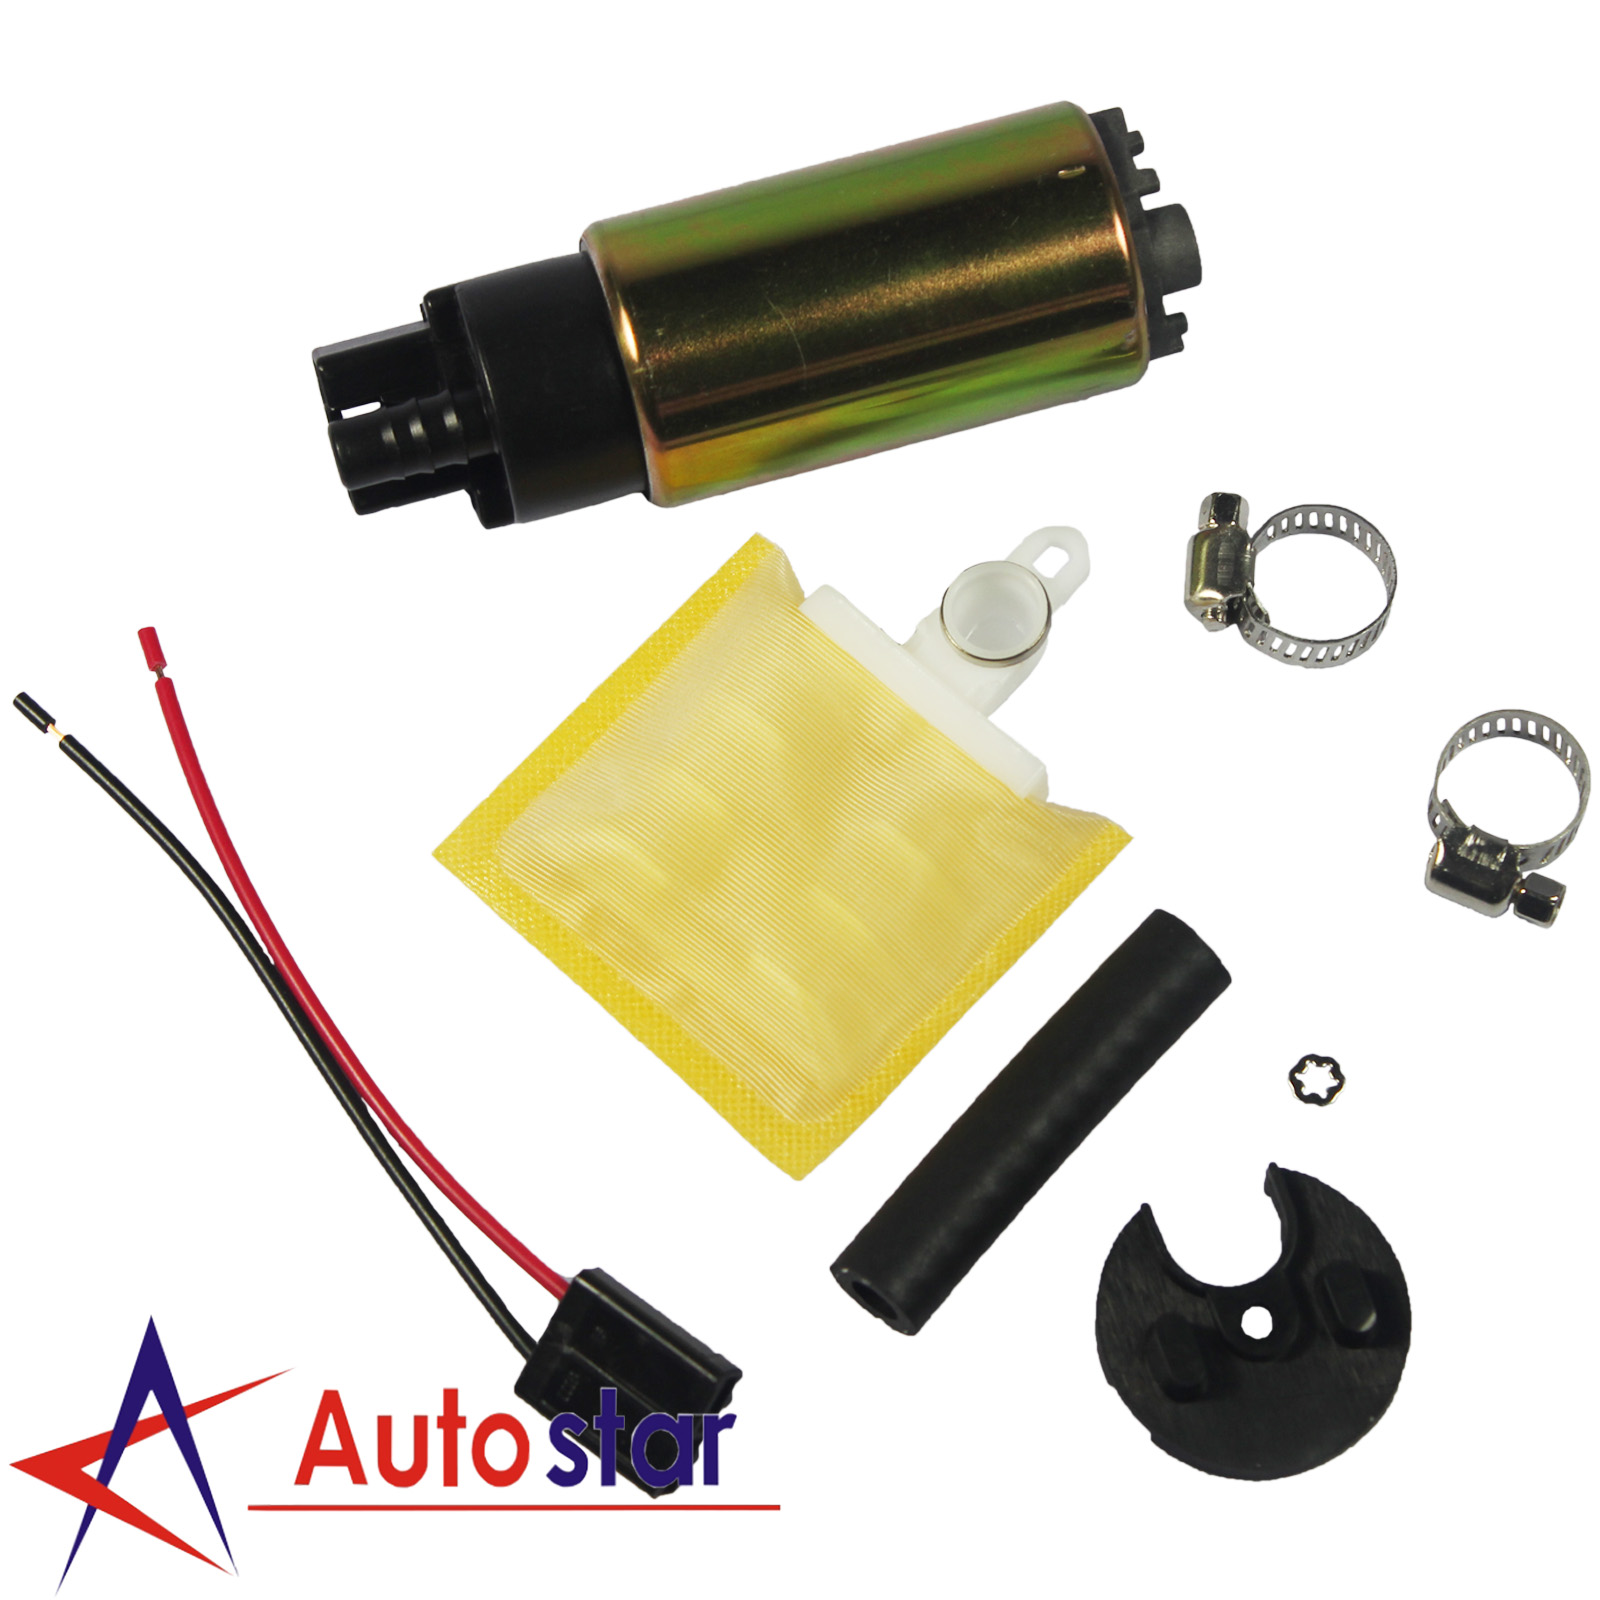 New Intank Fuel Pump W   Strainer For Suzuki King Quad 450 500 700 750 2005